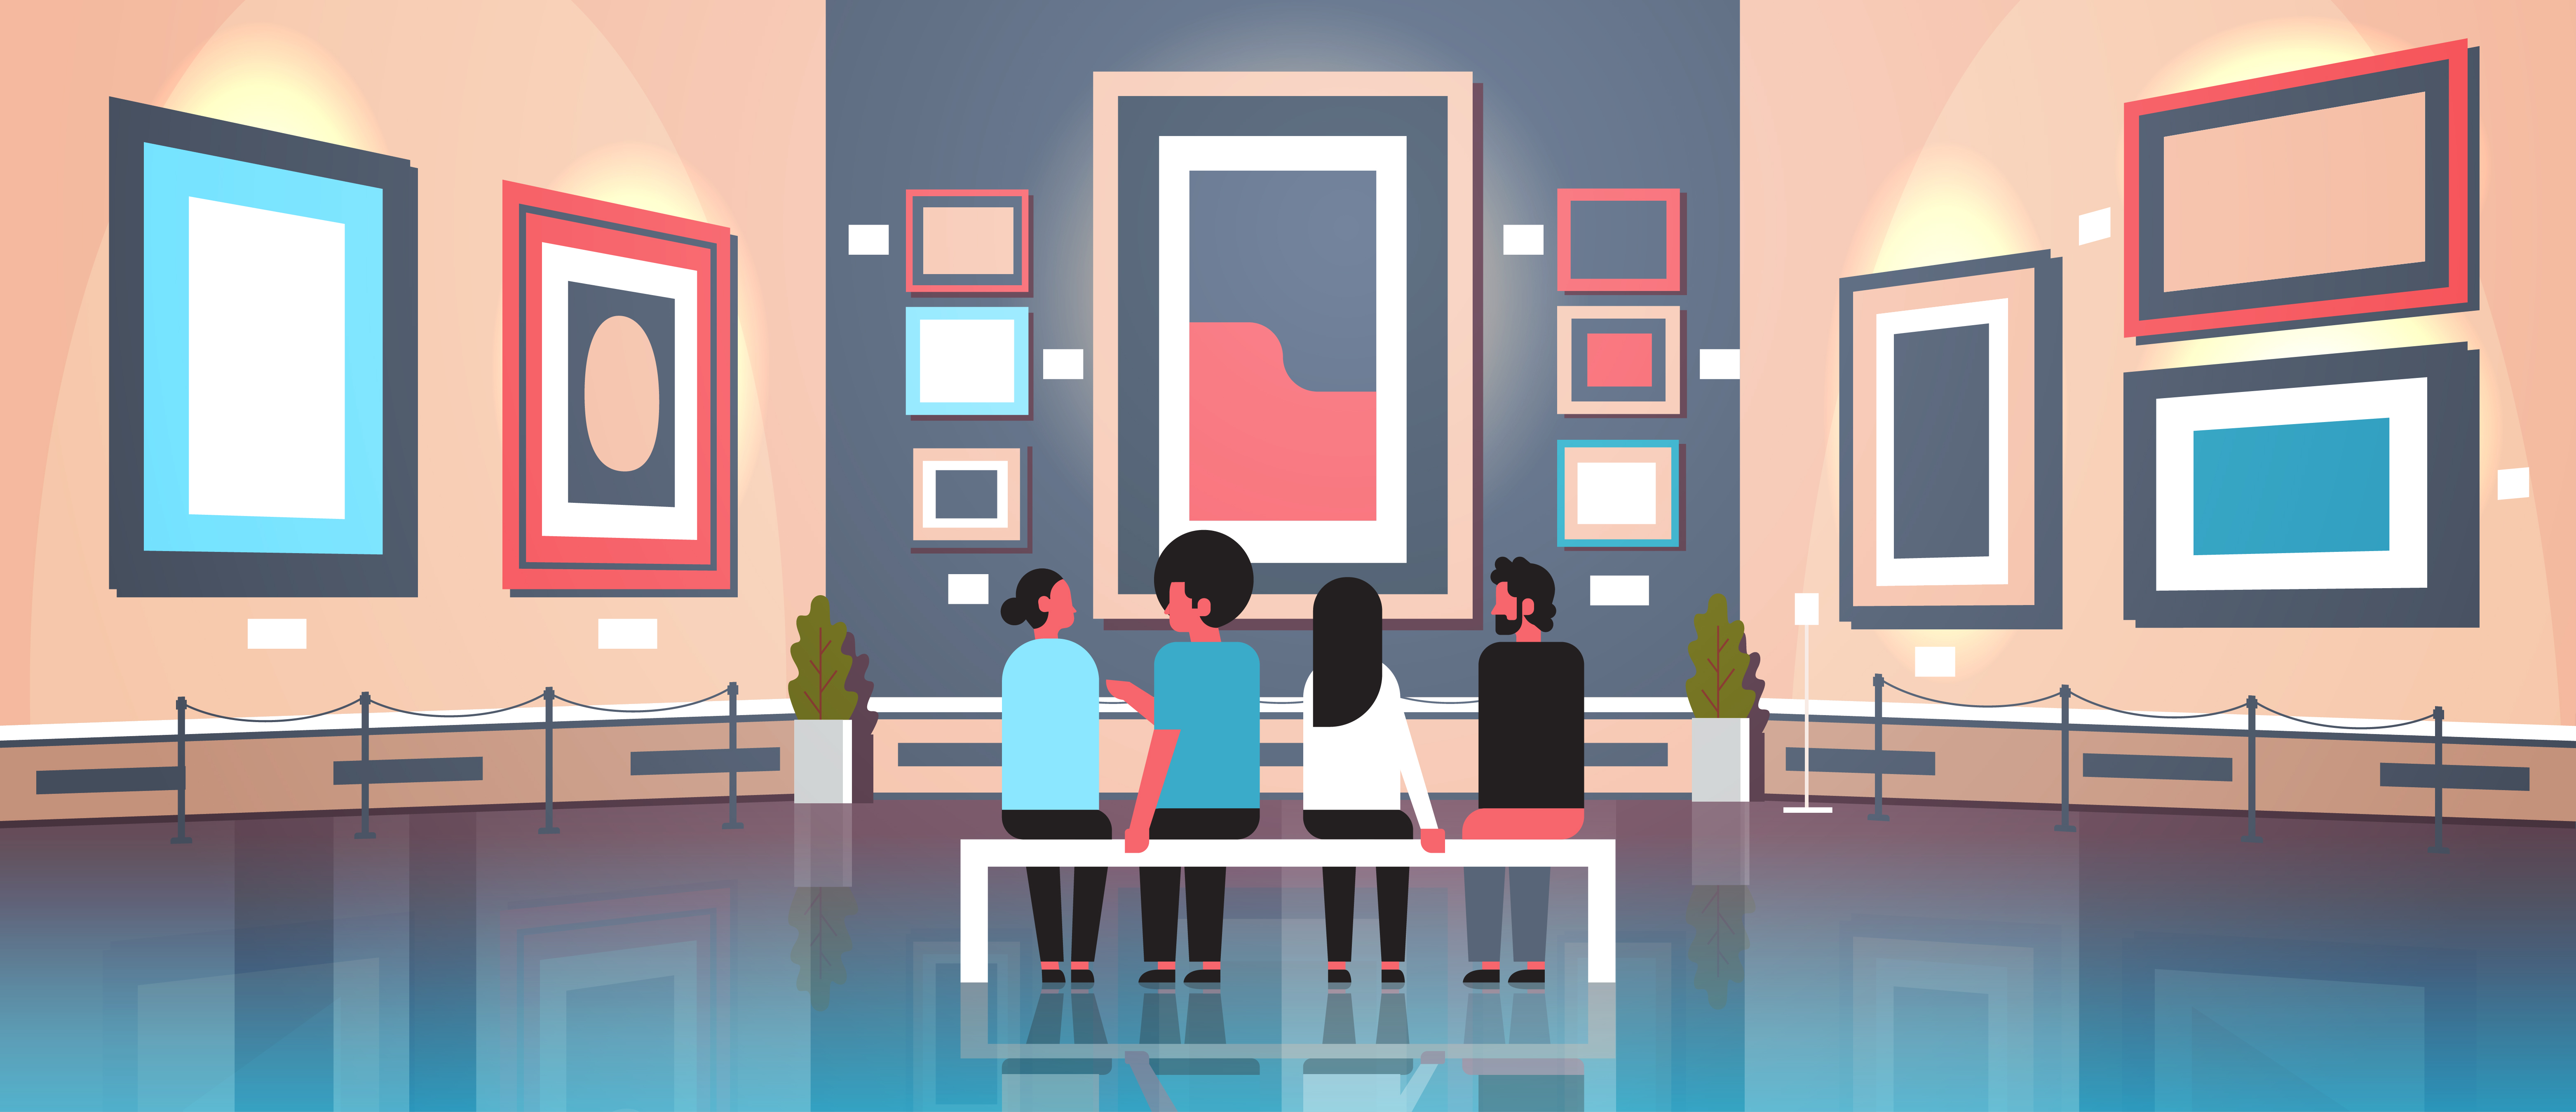 people tourists visitors in modern art gallery museum interior sitting on bench looking contemporary paintings artworks or exhibits horizontal banner vector illustration